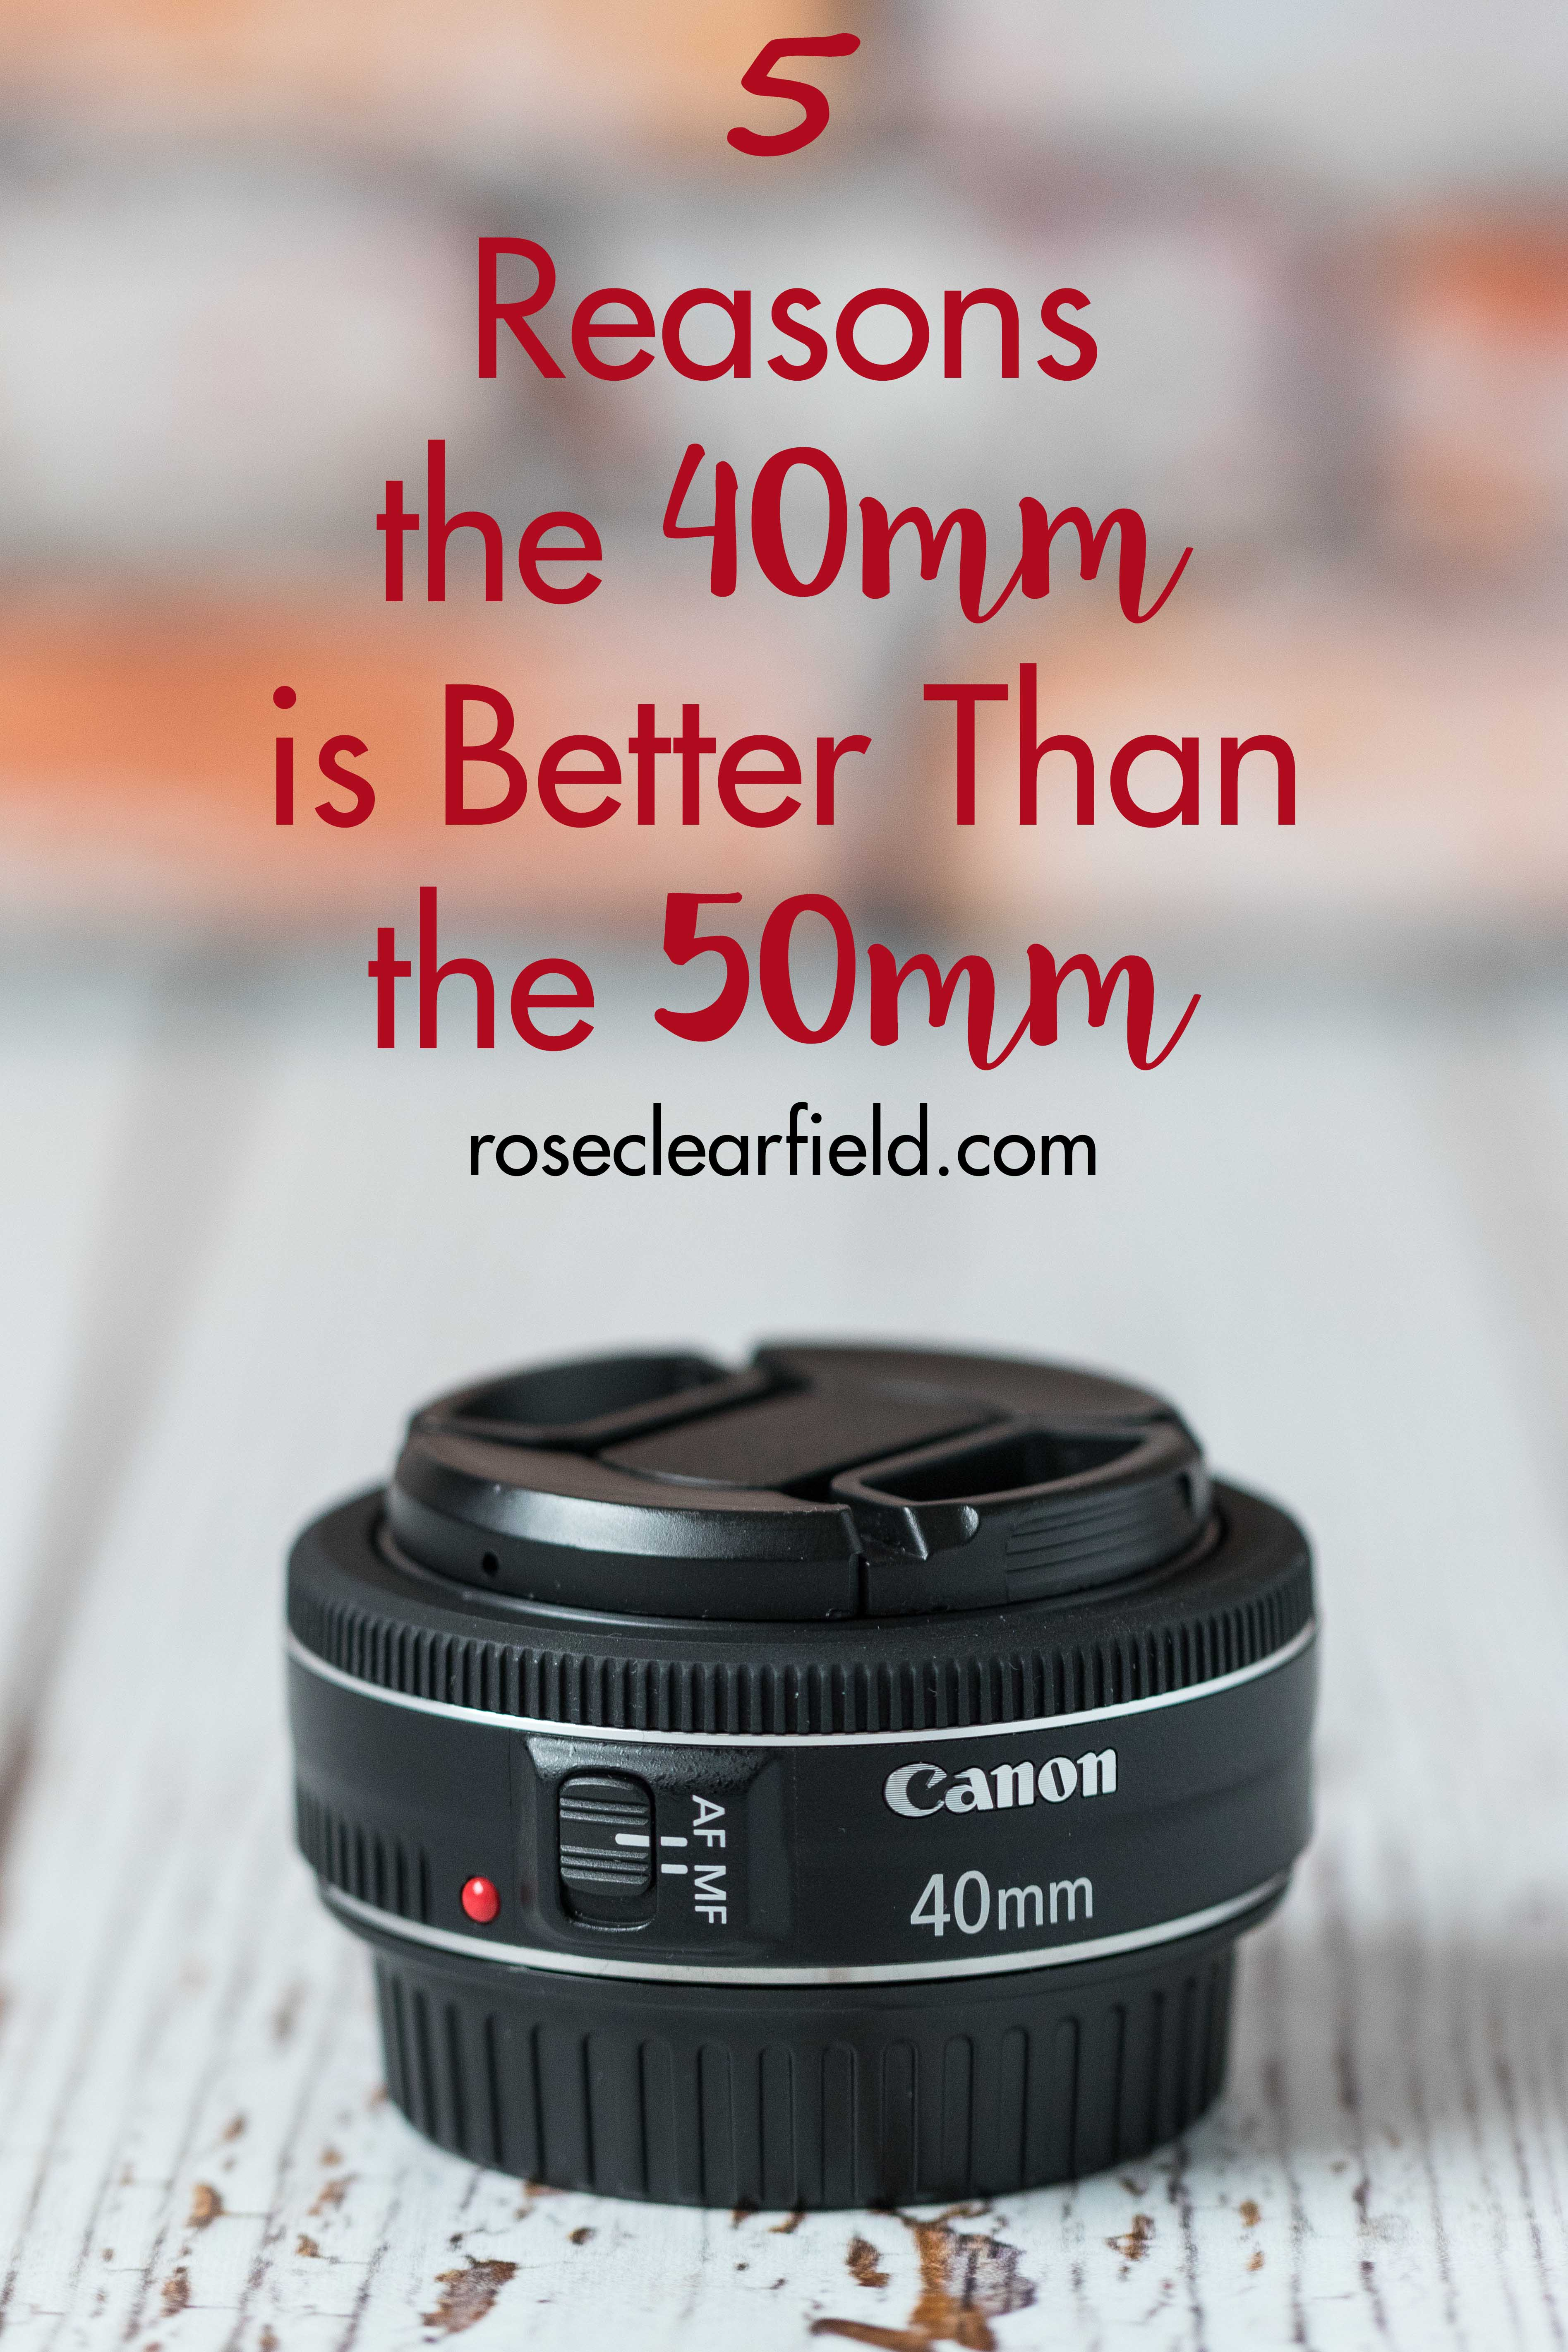 5 Reasons the 40mm is Better Than the 50mm   https://www.roseclearfield.com